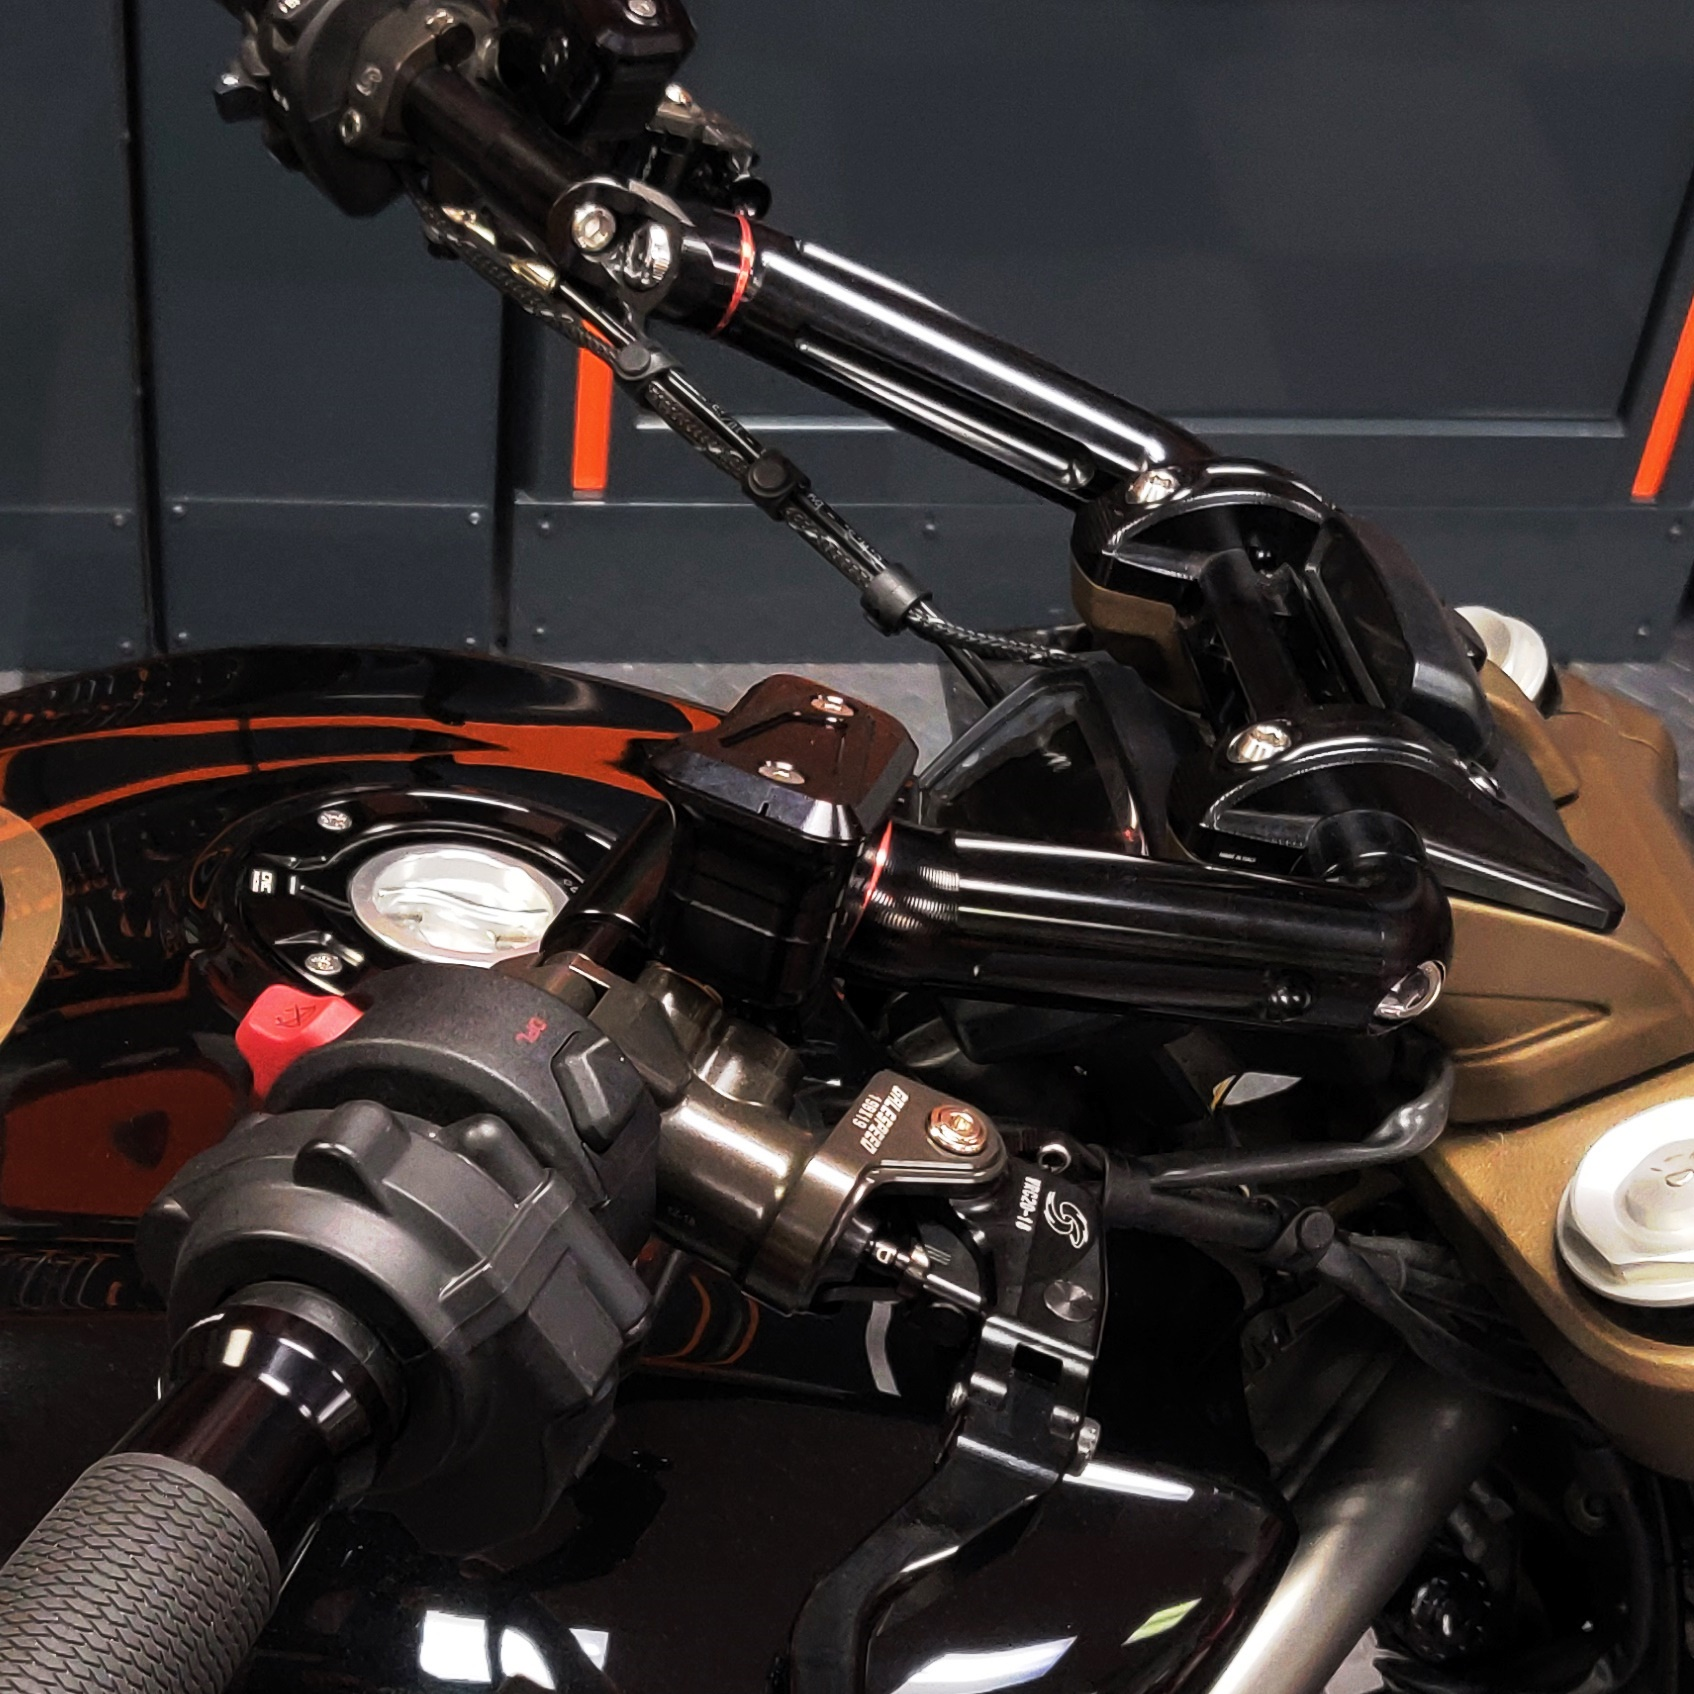 AELLA Aluminum Variable Handlebars for the Ducati Xdiavel